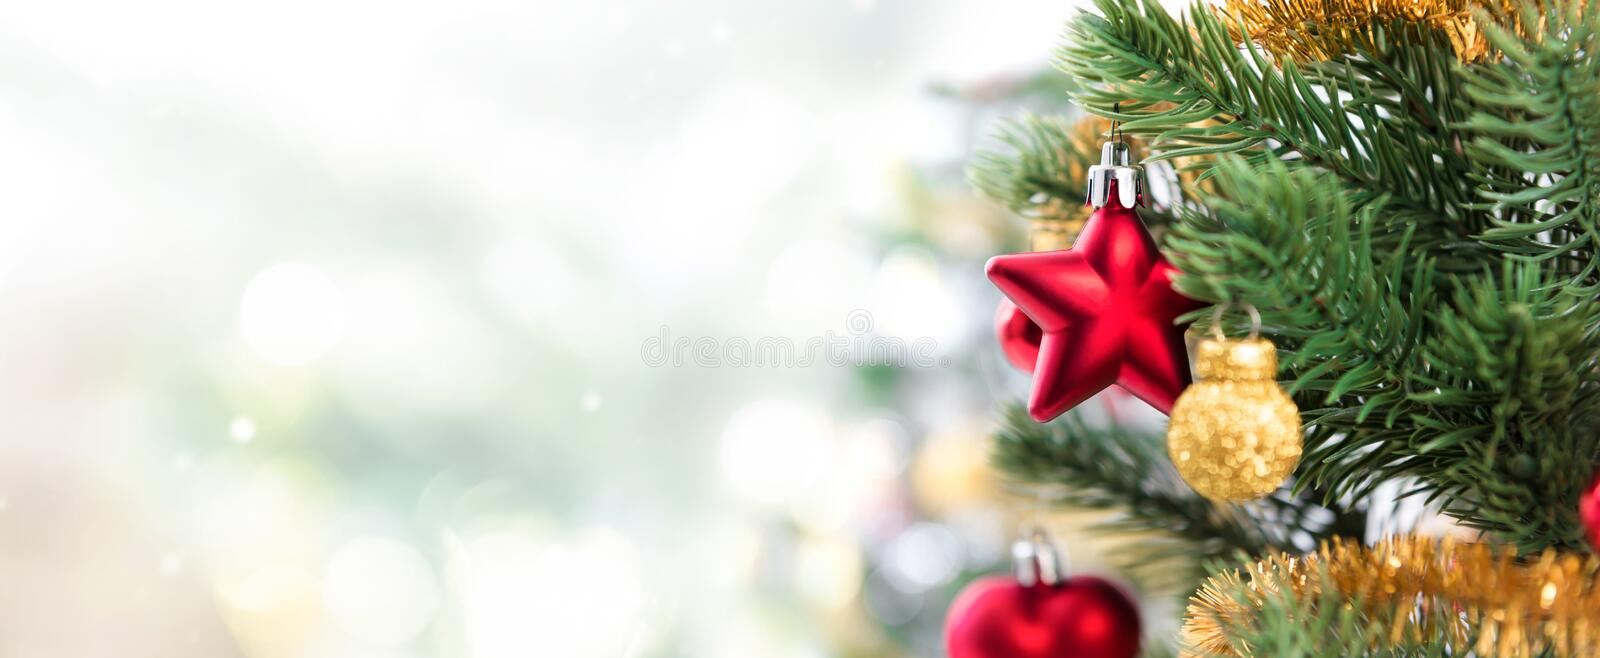 Close up of colorful ornaments on Christmas tree, panoramic banner stock photo